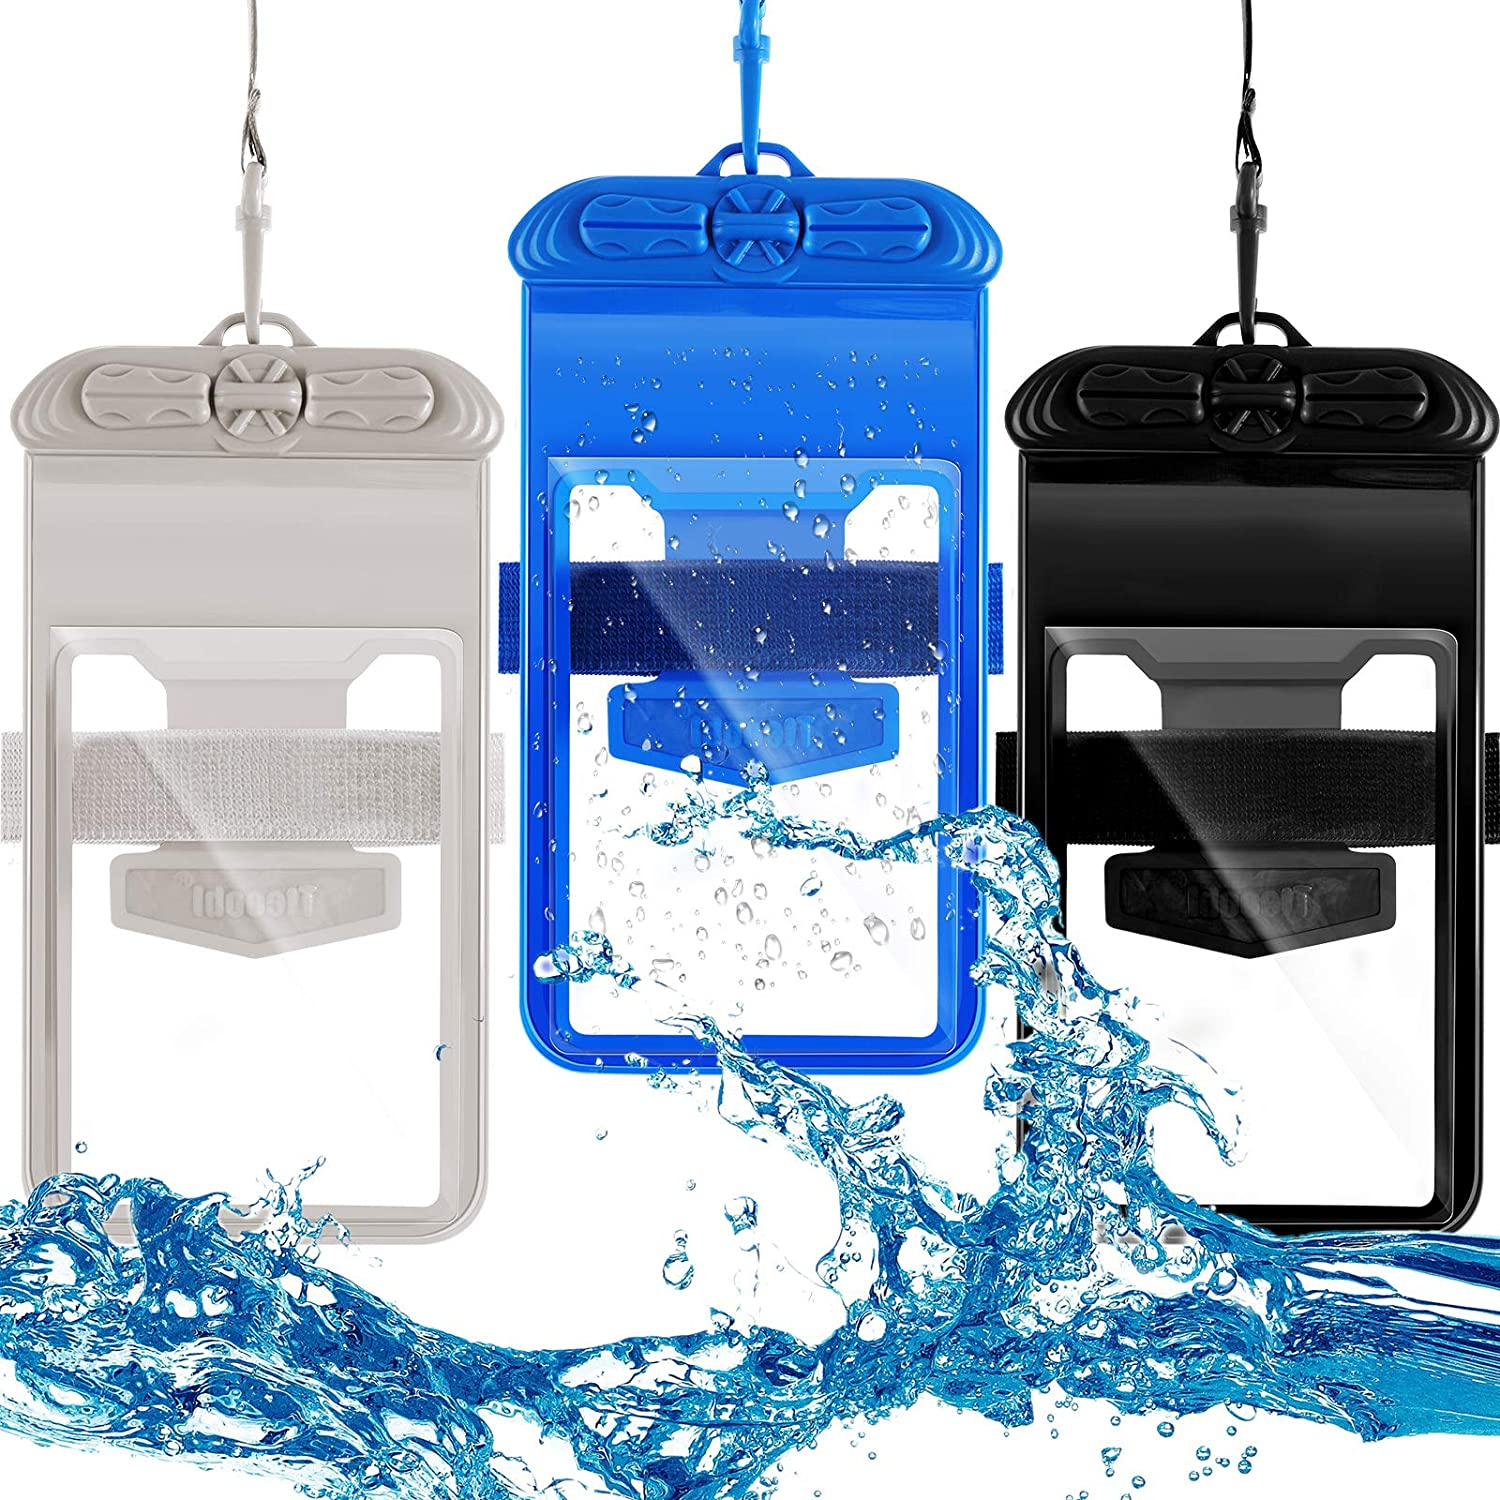 3 Pieces Universal Waterproof Case with Armband Waterproof Pouch Waterproof Cellphone Case Cellphone Dry Bag Compatible with Smartphones up to 6.89 Inch